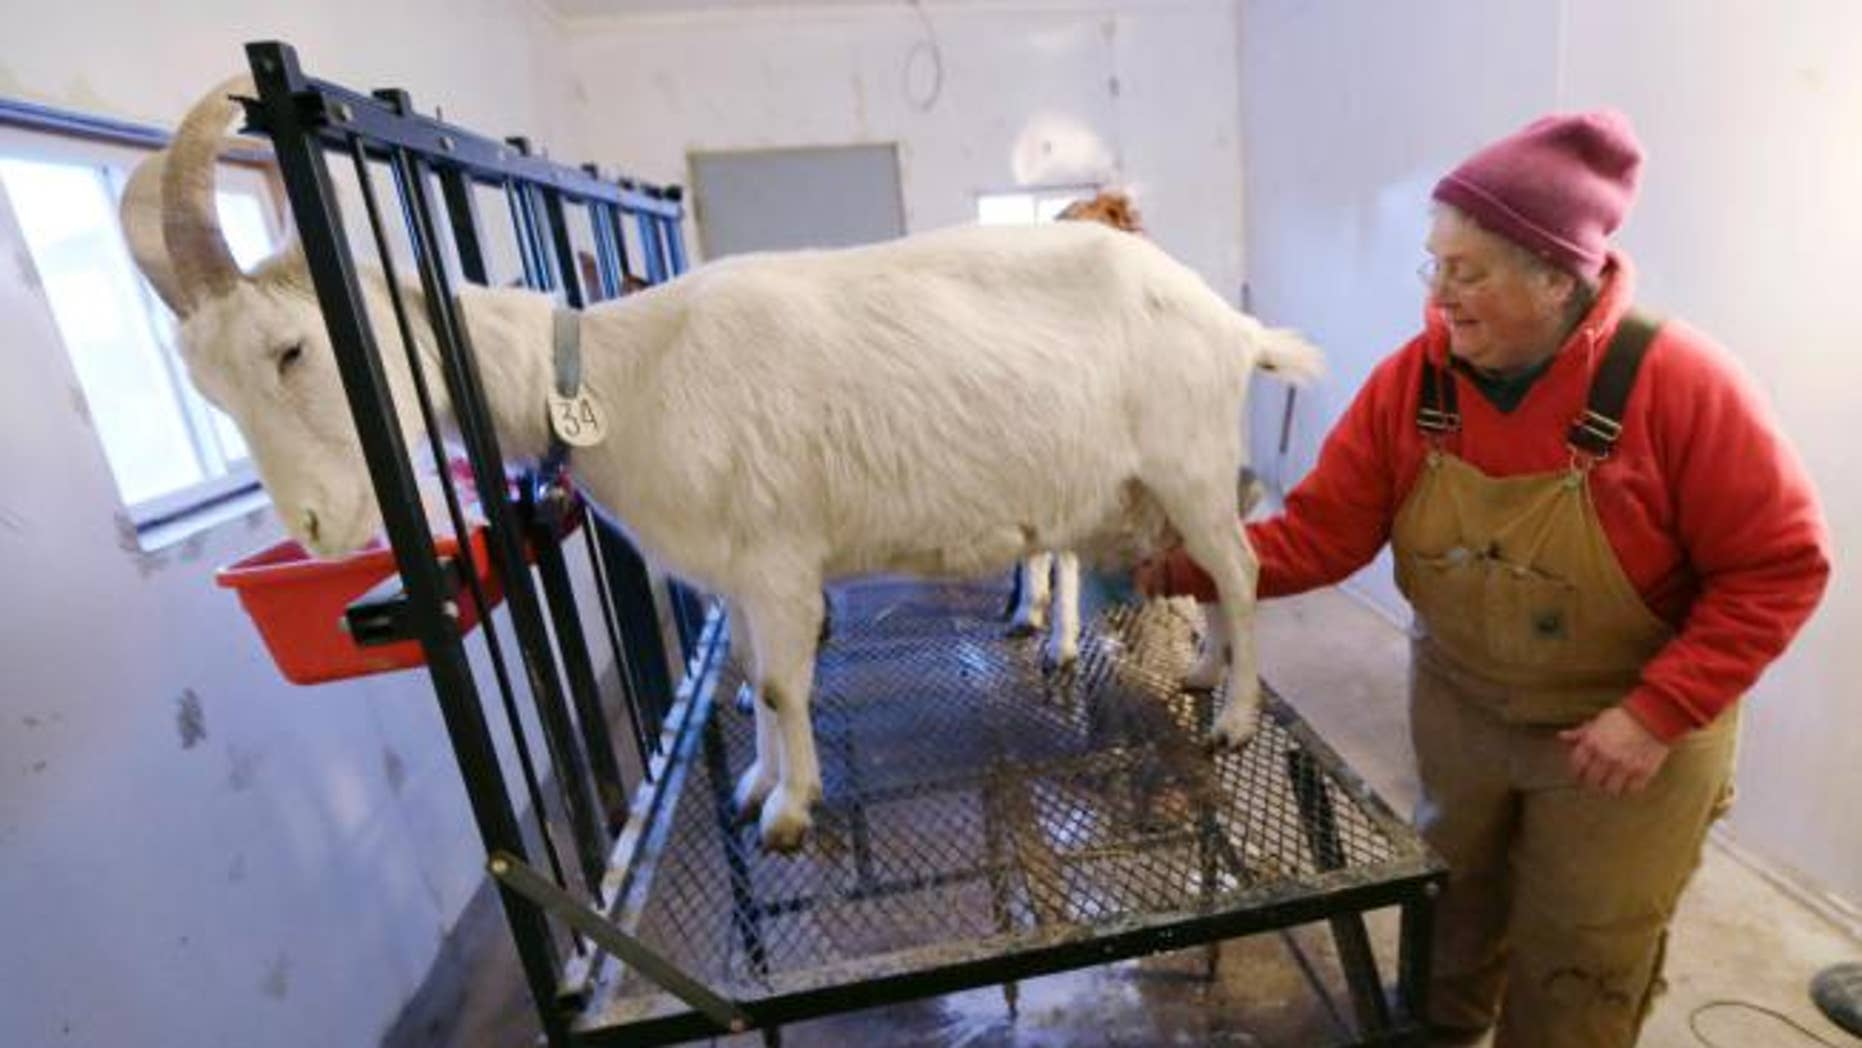 Paula Olson prepares a goat for milking on her farm near Madrid, Iowa.